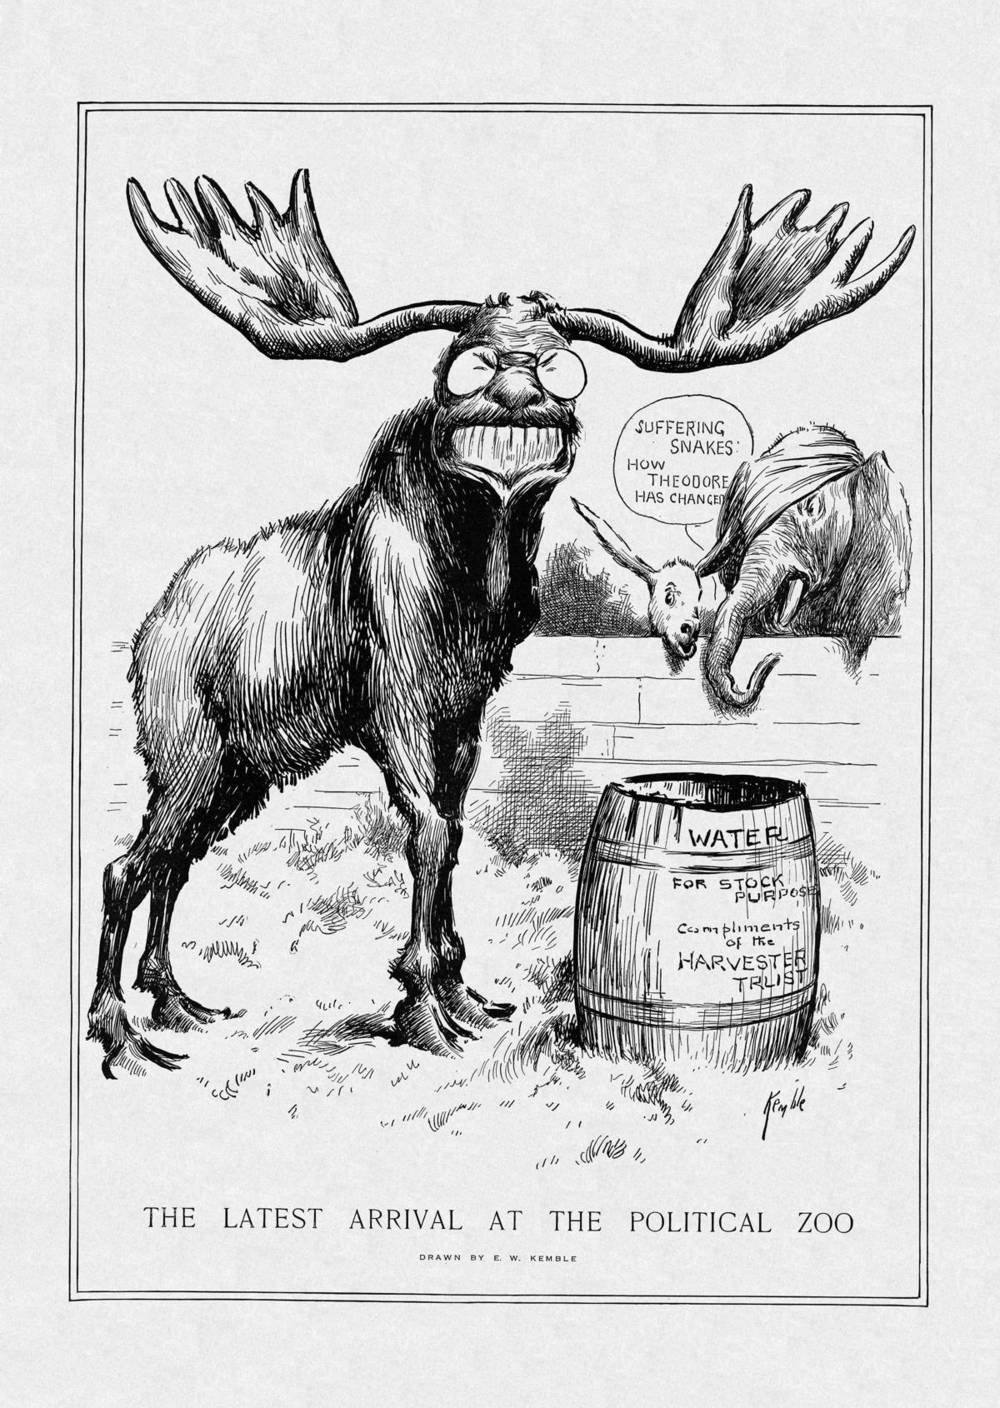 The Latest Arrival at the Political Zoo - July 20, 1912